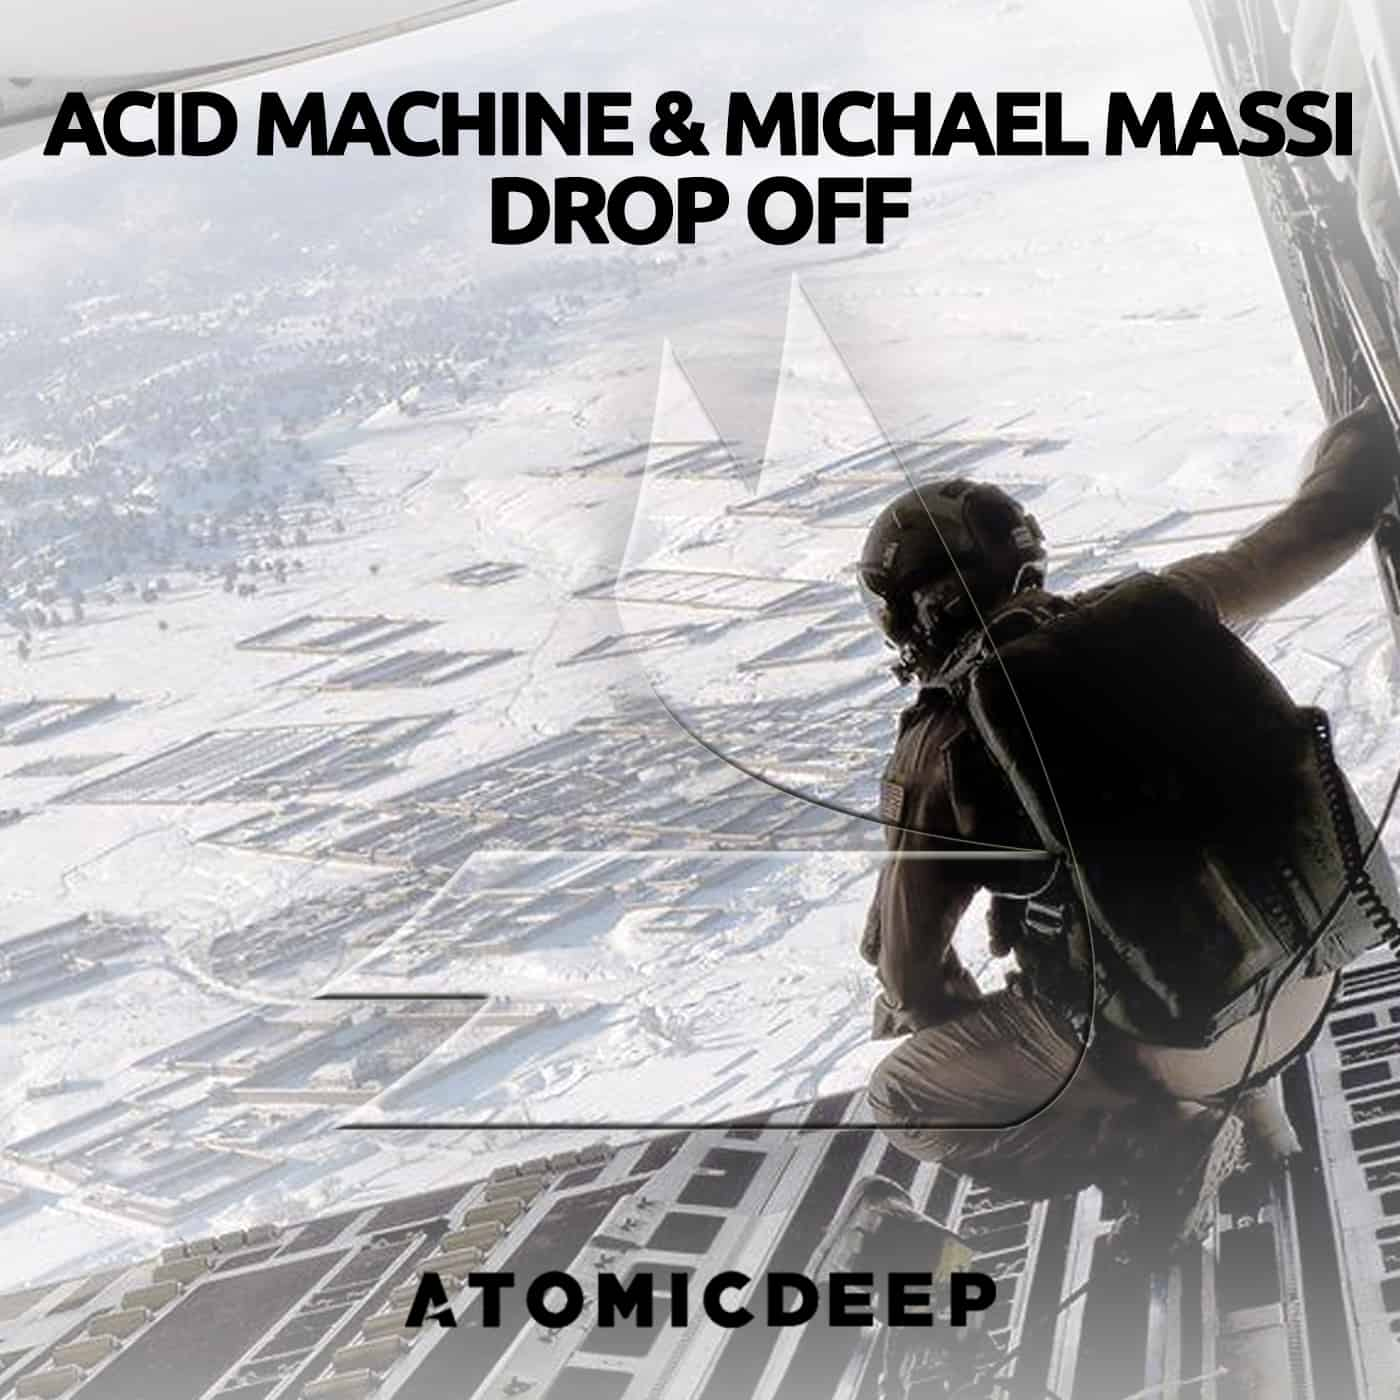 Acid Machine & Michael Massi - Drop Off